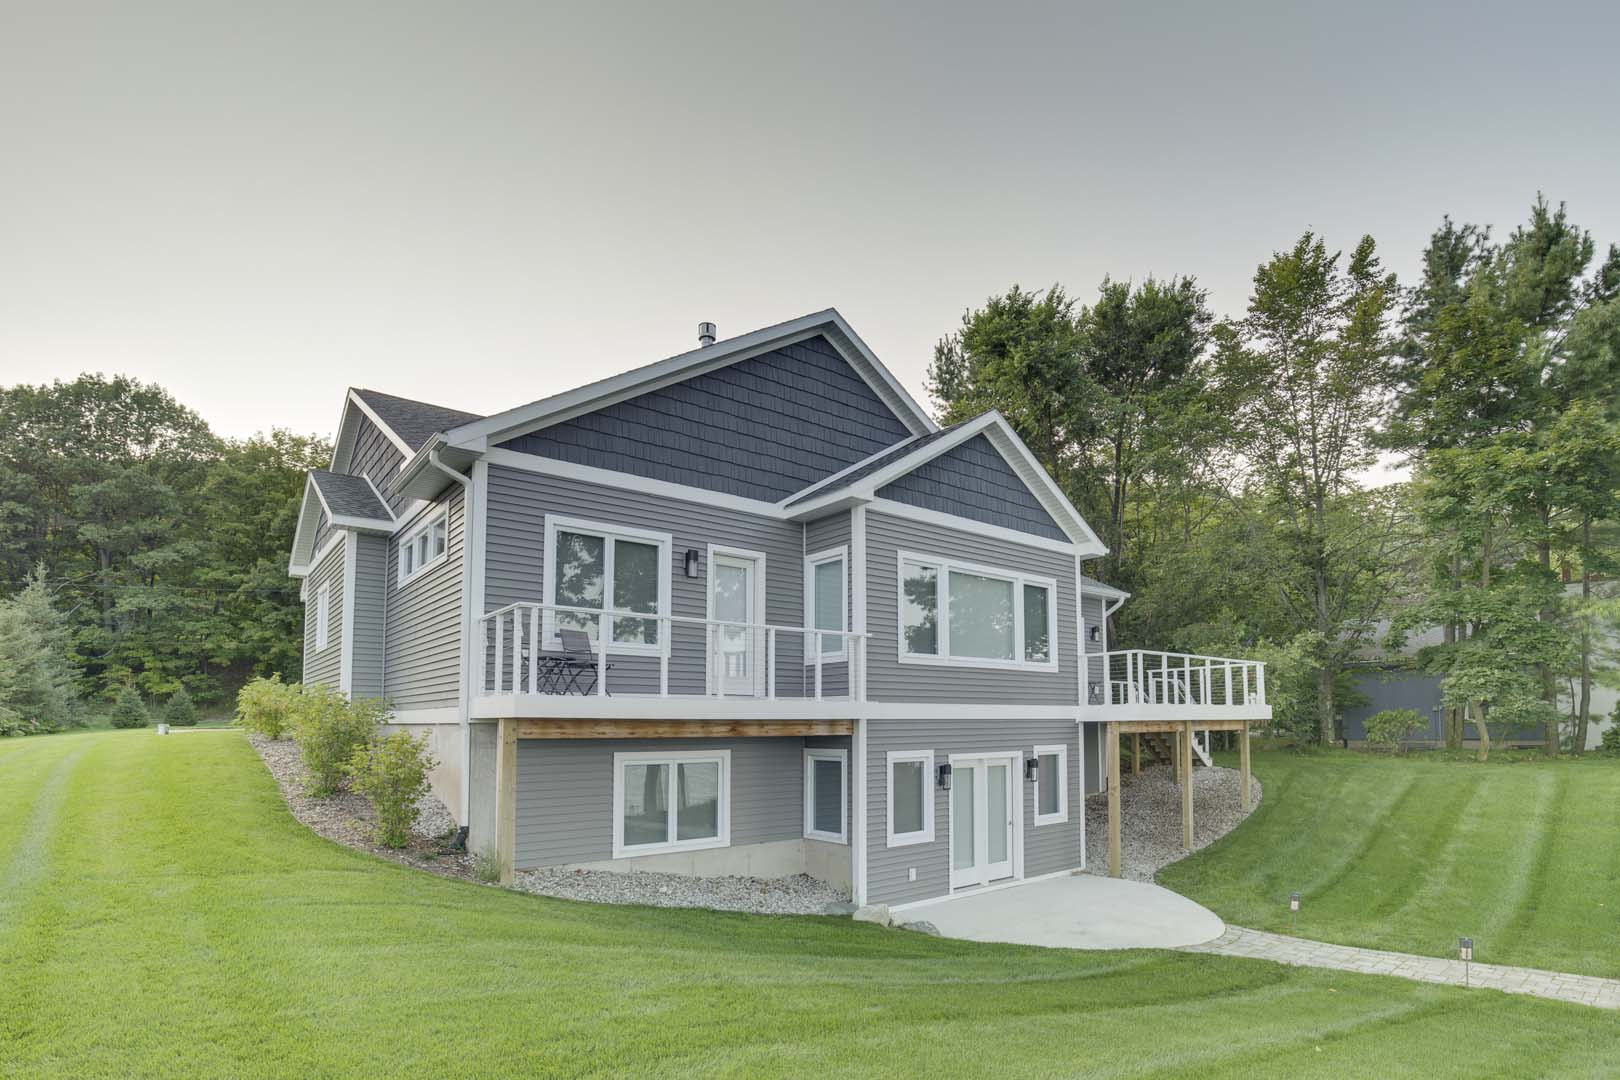 One of our custom homes in Traverse City, MI